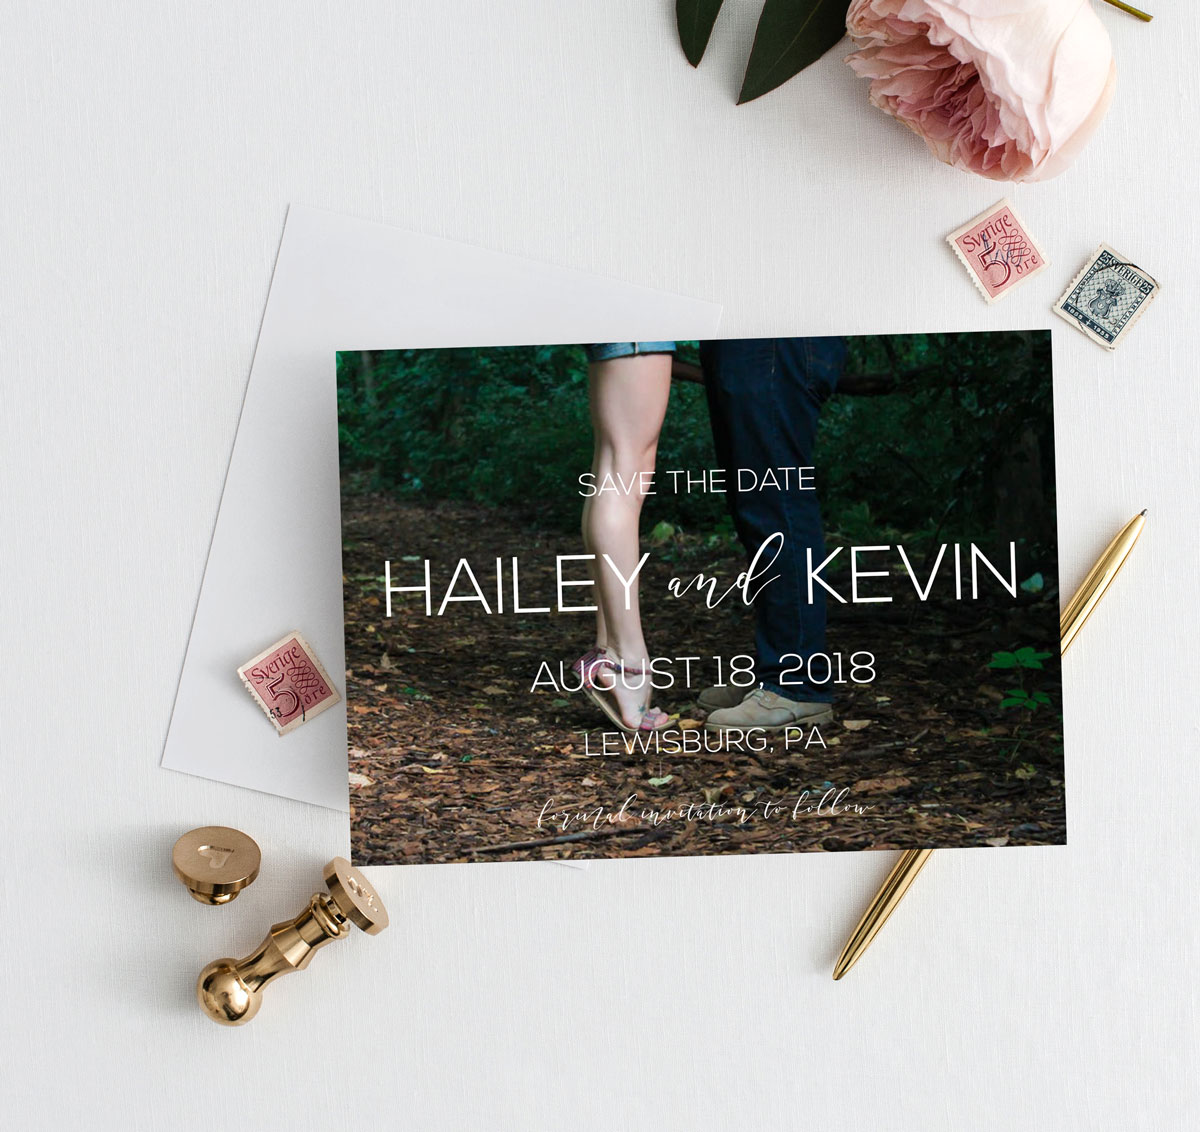 big-names-photo-save-the-date-photo-card-2